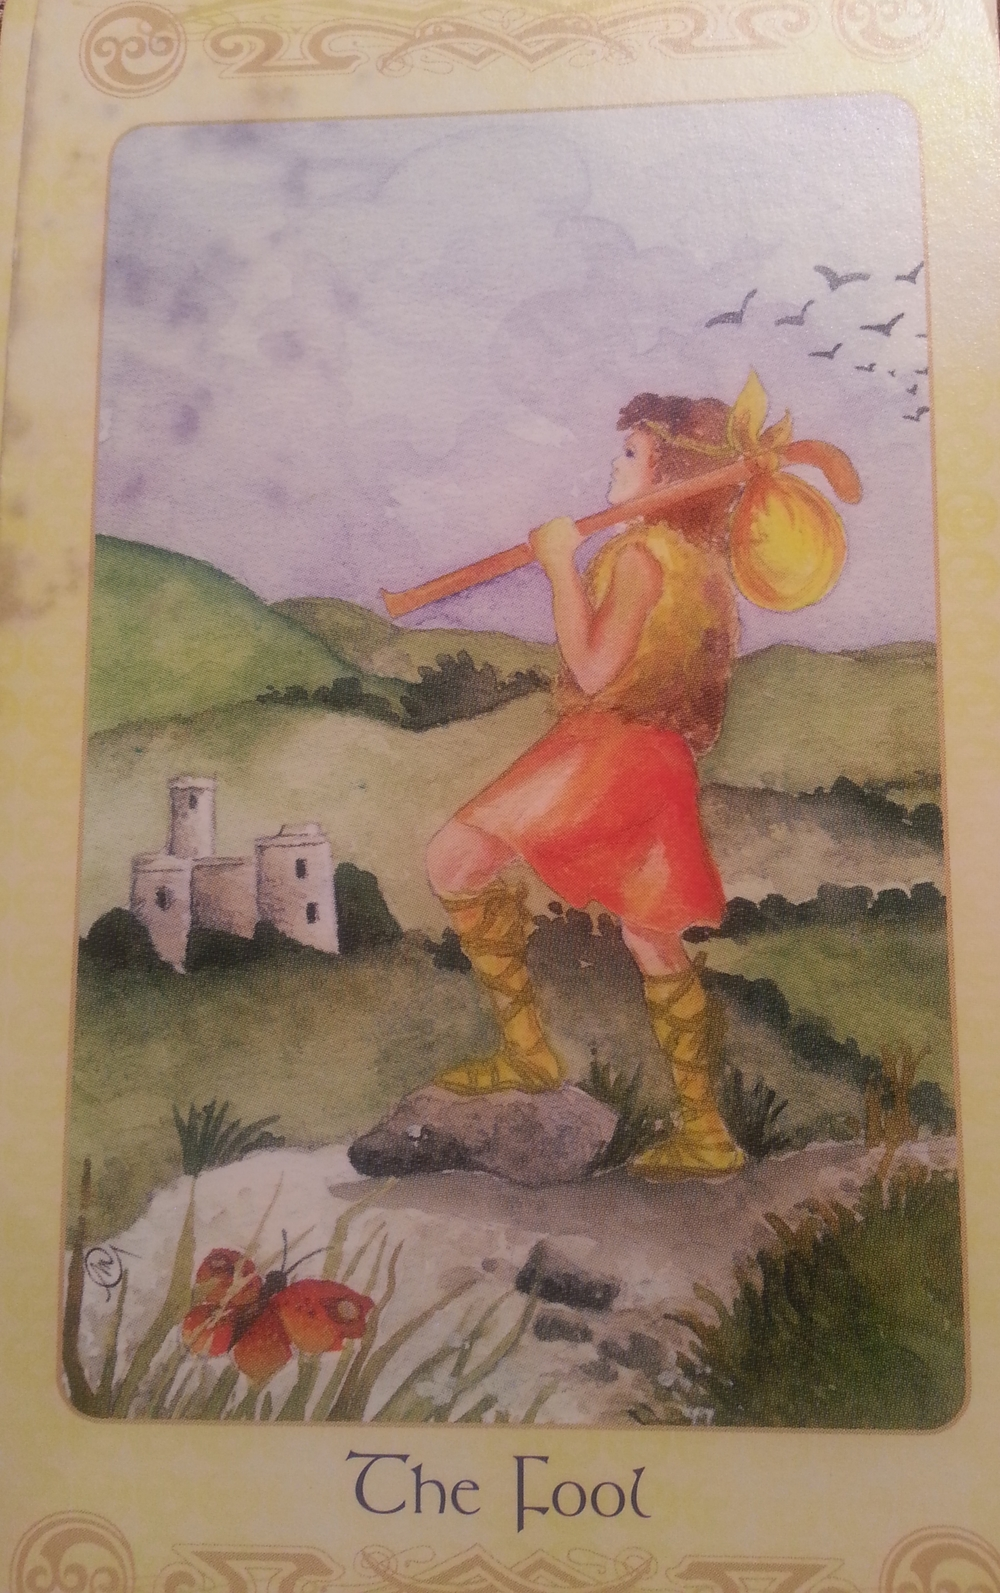 THEME OF THE WEEKAUGUST 1ST-7TH: THE FOOL-CARD 1-AKA THE LEAP OF FAITH- AS THE FOOL FEARLESSLYSHARES HIS GIFTS WITH THE WORLD, HE KNOWS HE IS IN SERVICE TO ALL THAT IS, HIS HEART IGNITES FROM JOY, HE IS WHO HE IS WITHOUT COMPROMISE, HE IS THE CREATIVE SPARK